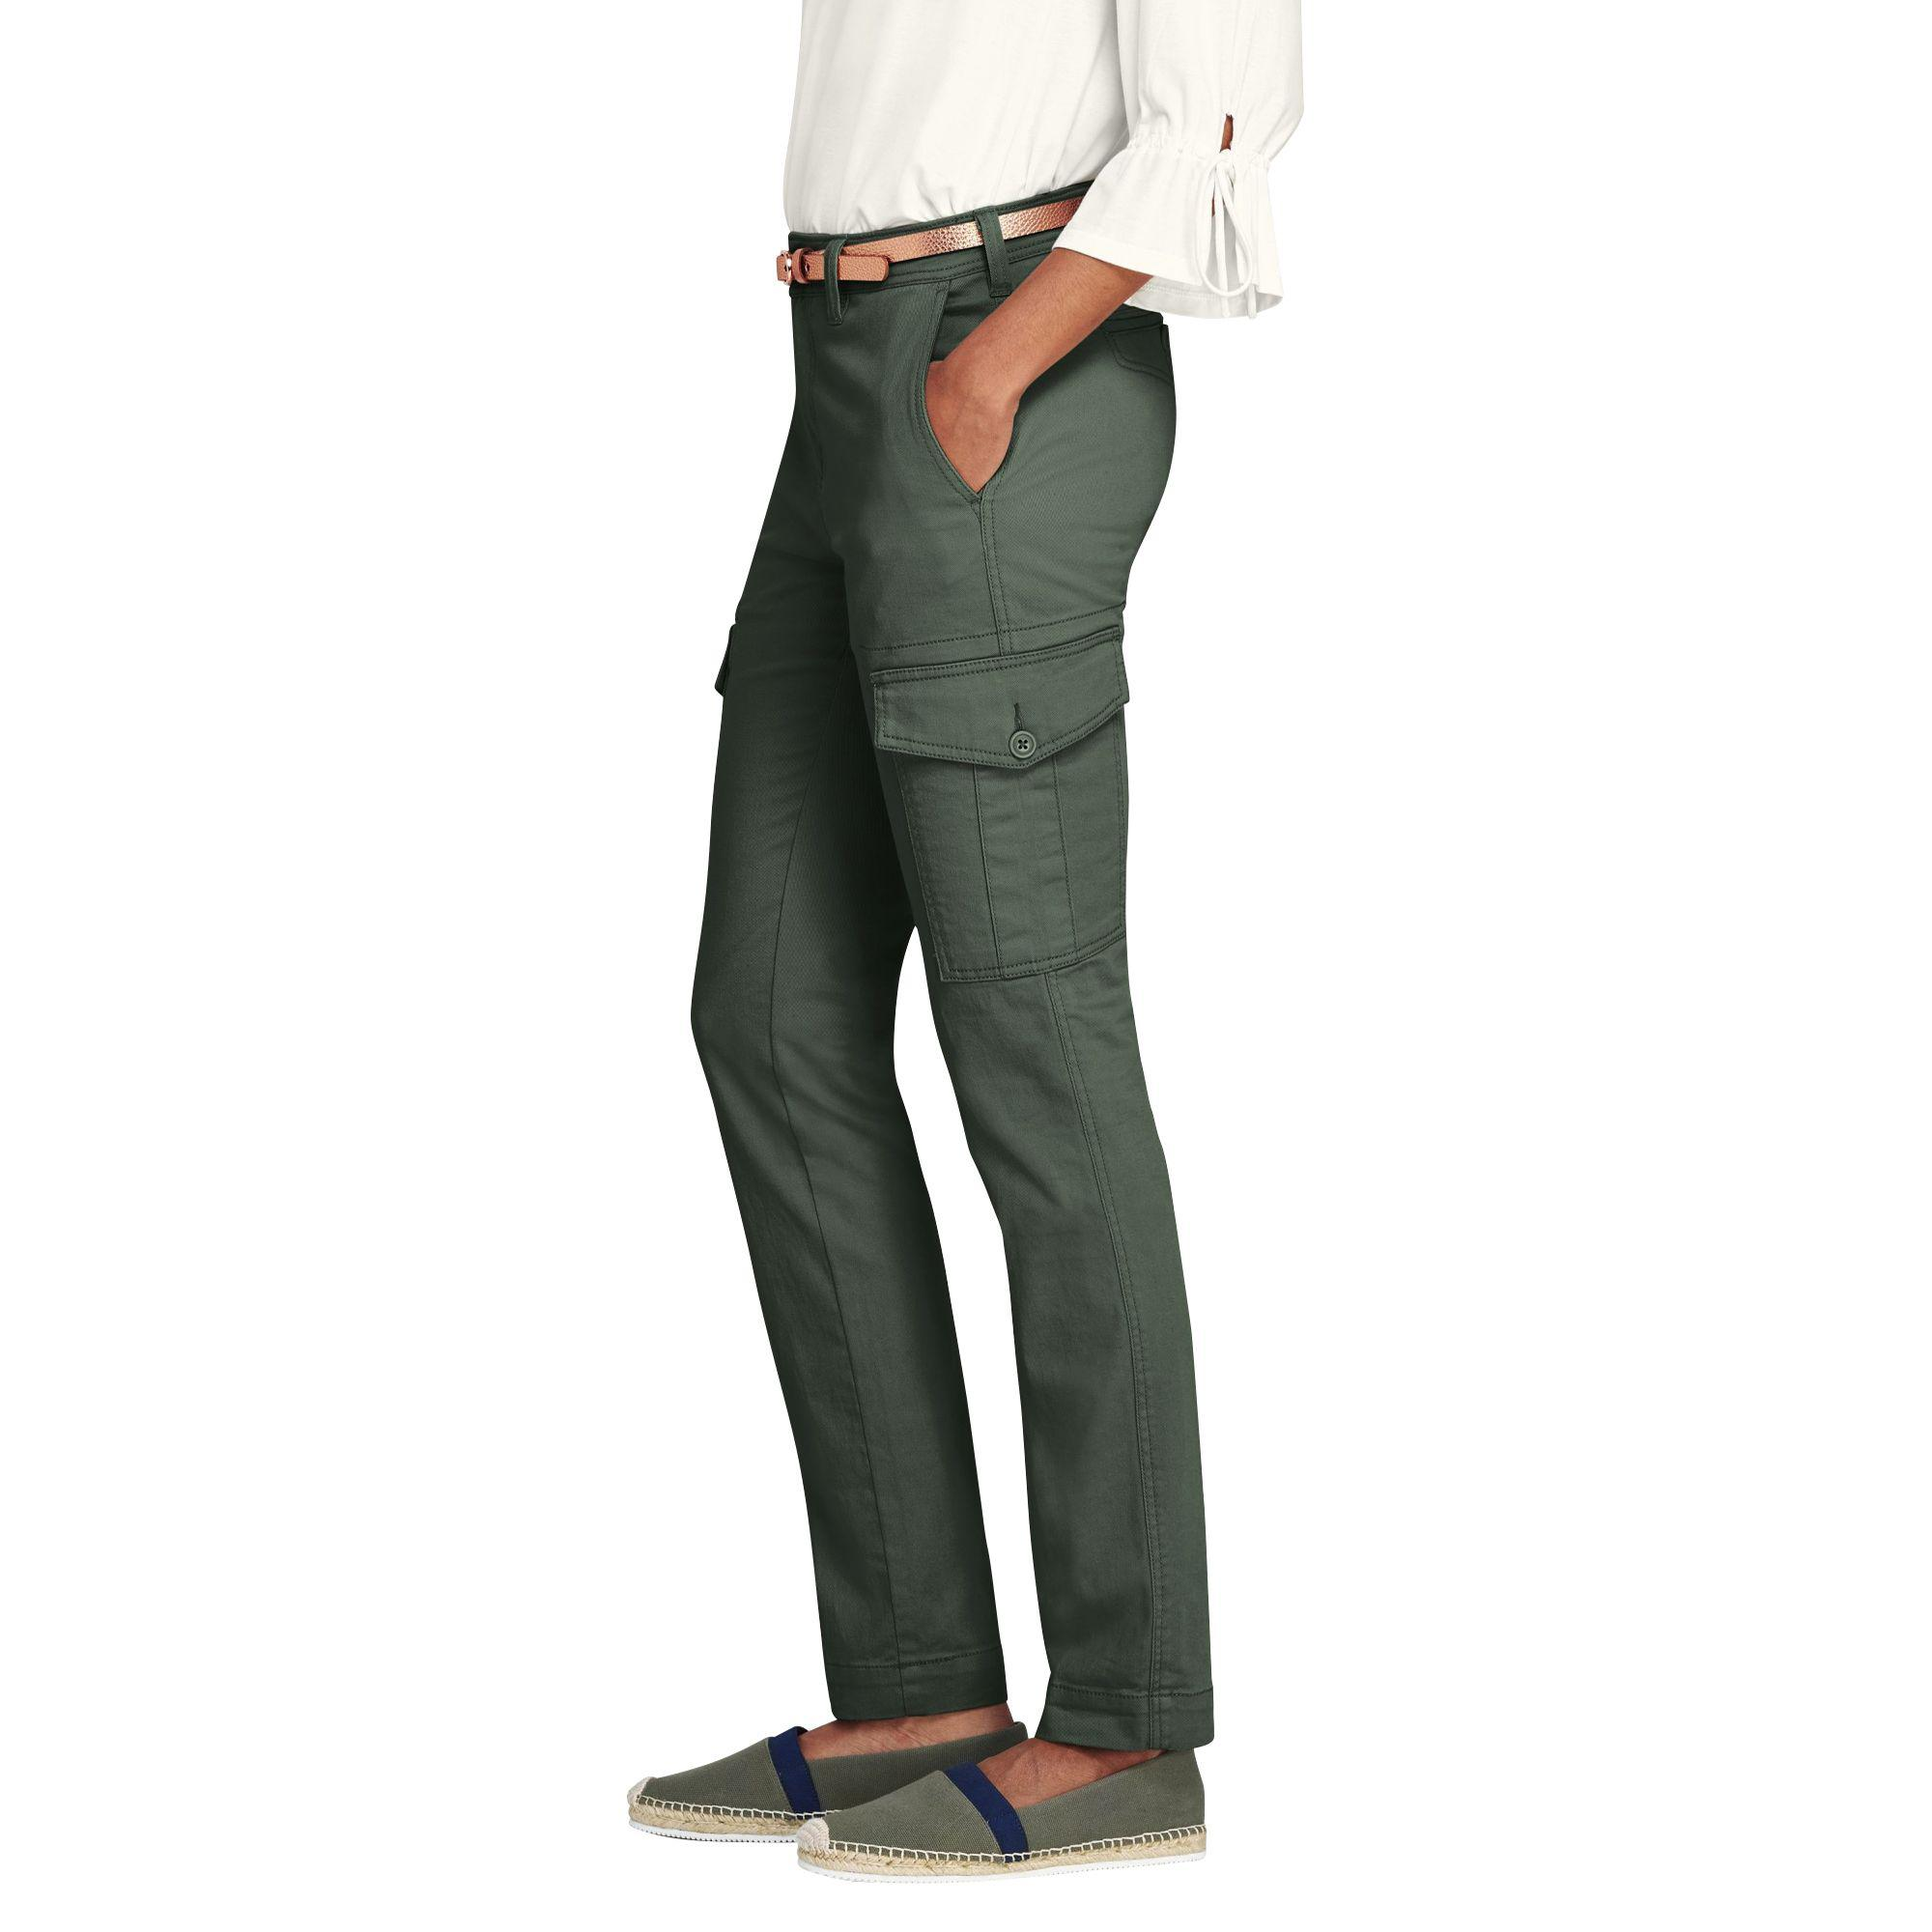 ce7207e7e4c Lands  End - Green Womens Slim Cargo Trousers - Lyst. View fullscreen